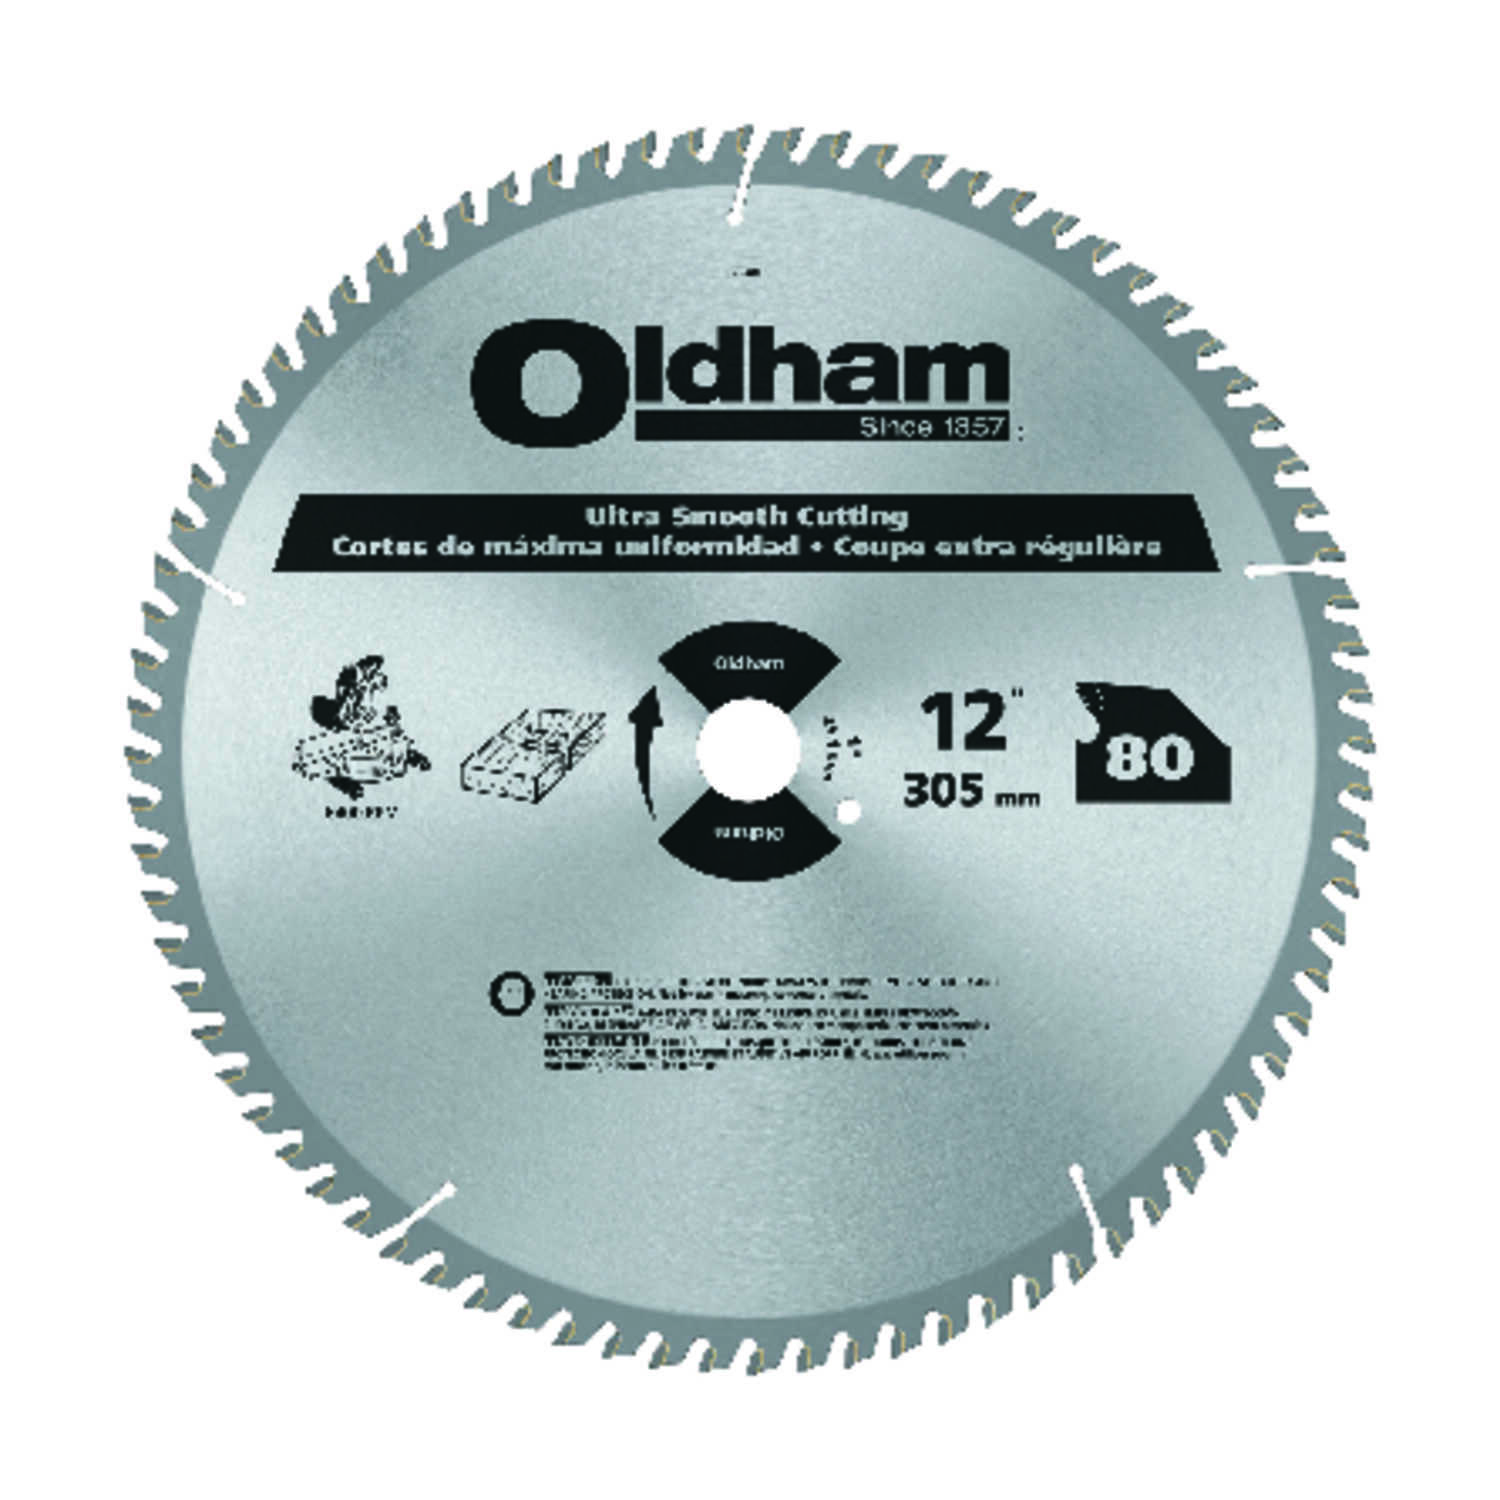 Oldham  12 in. Dia. x 1 in.  Carbide Tipped  Circular Saw Blade  80 teeth 1 pk